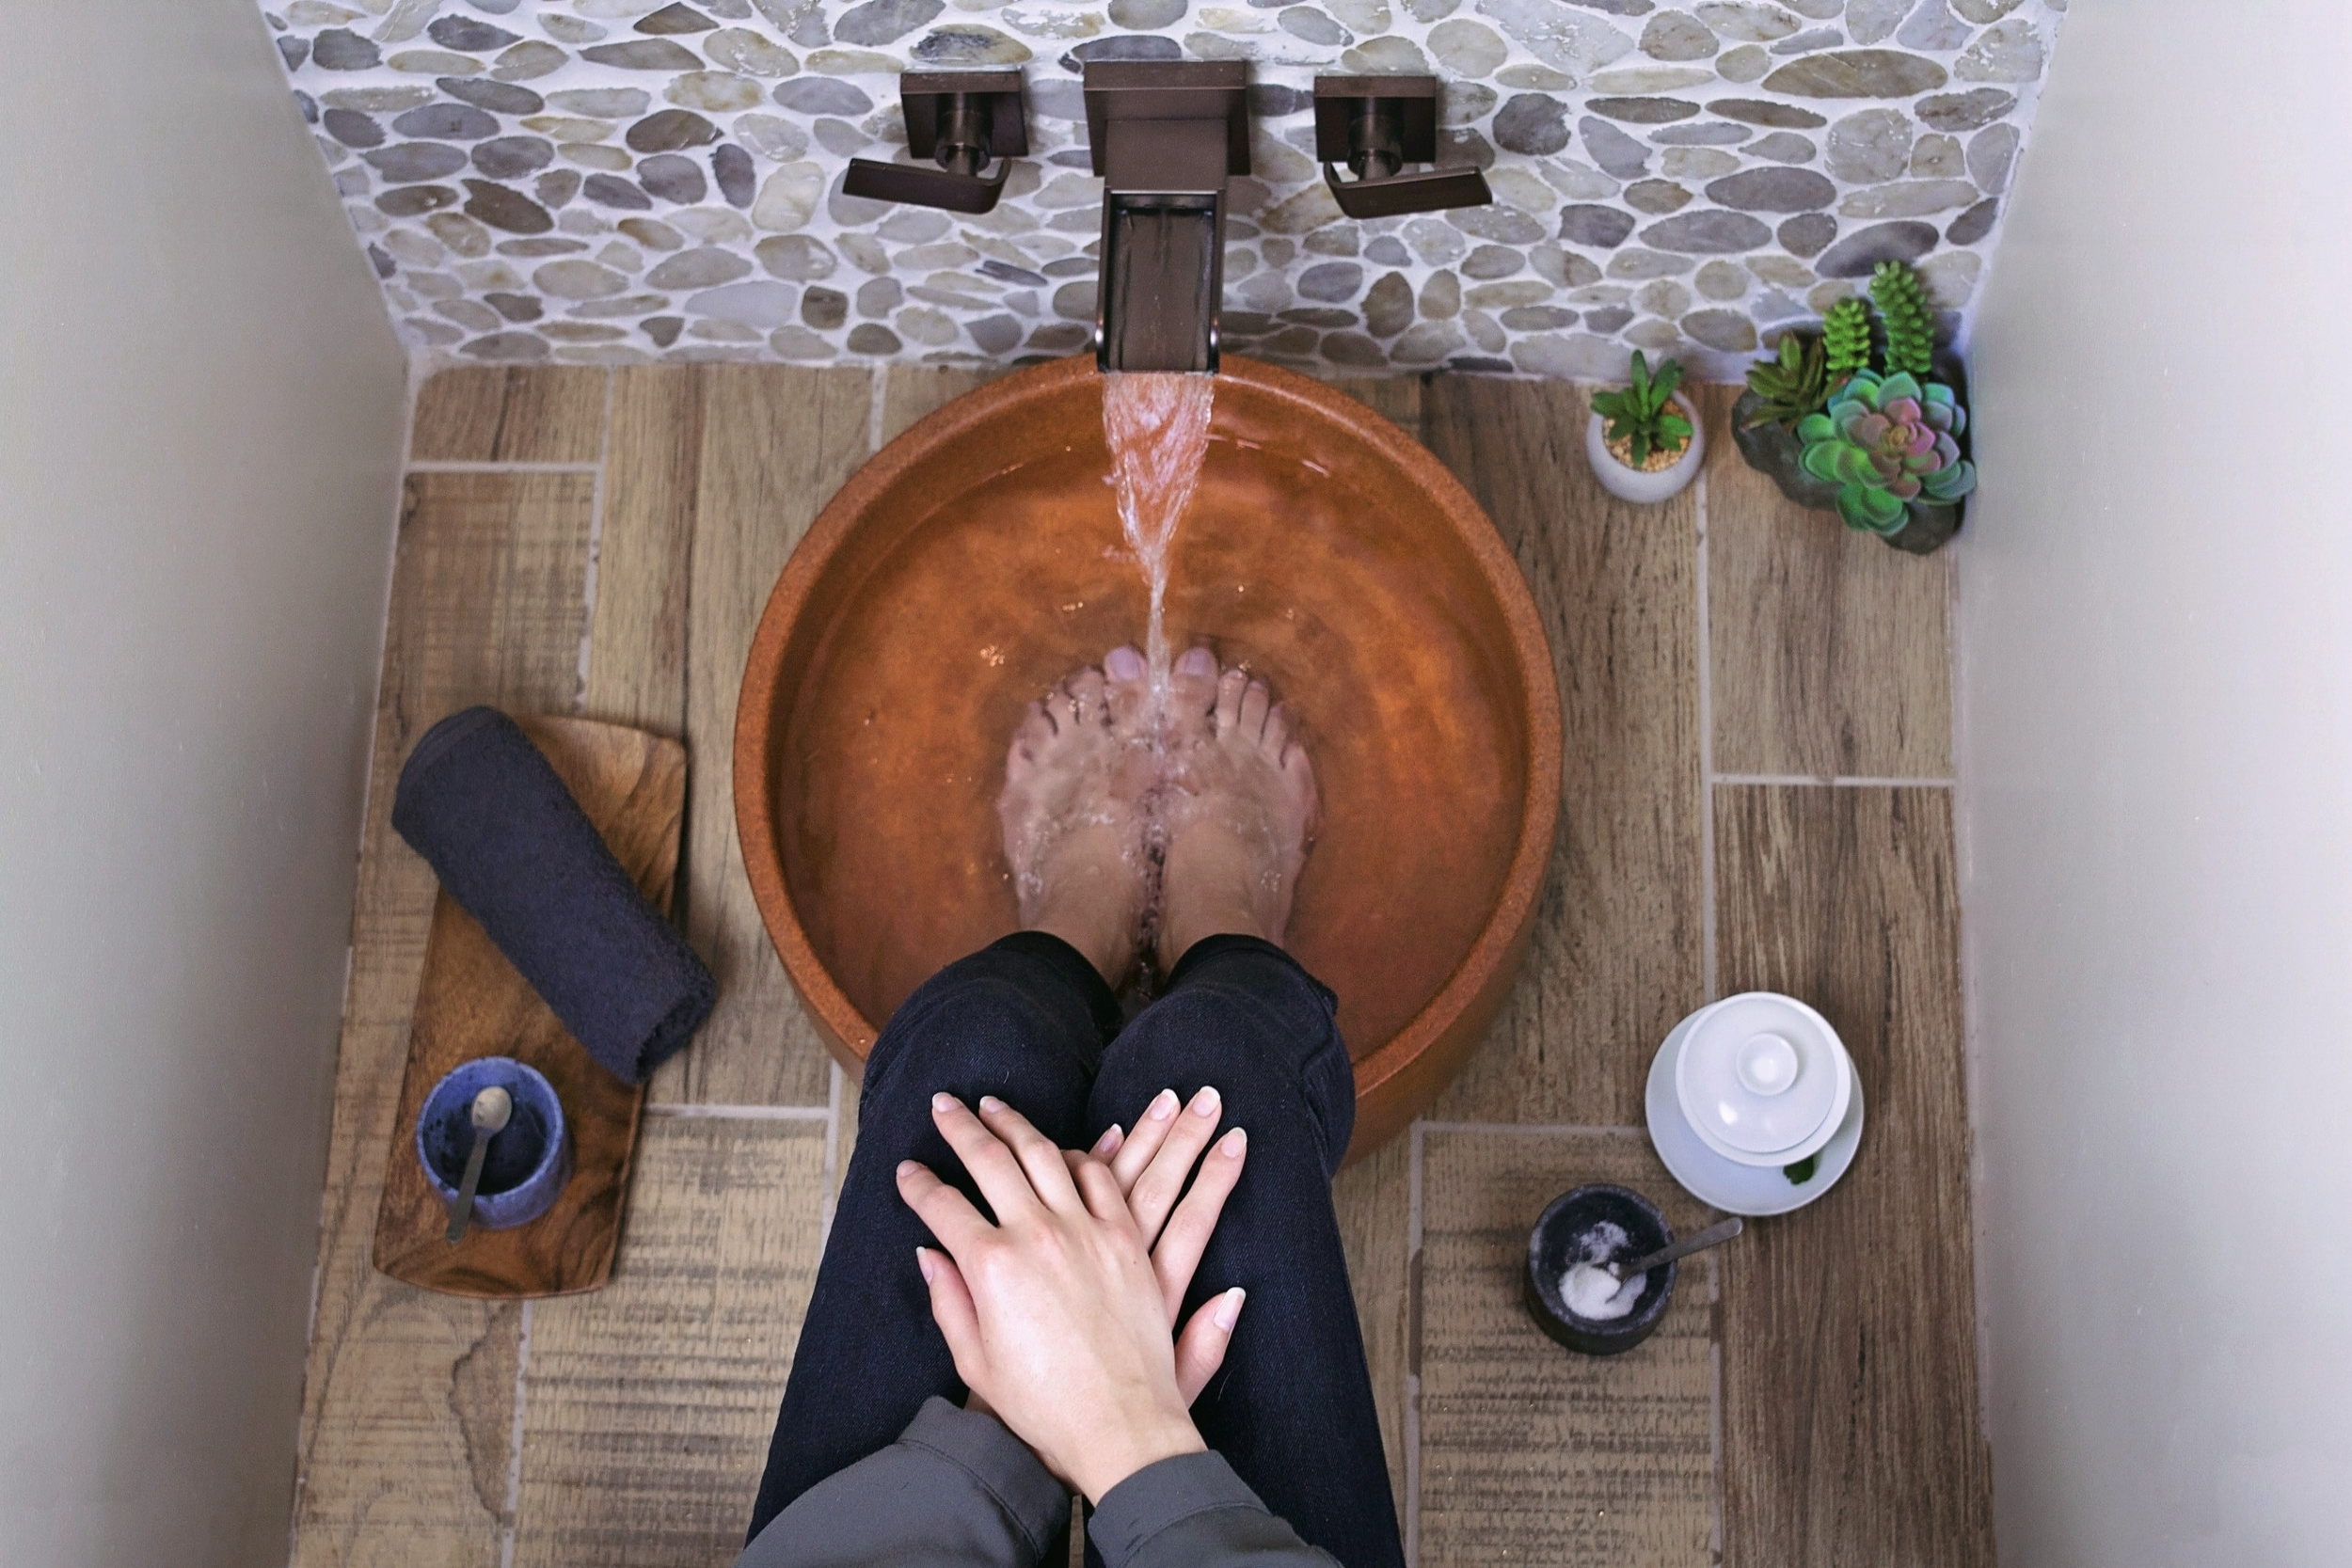 Foot Soak - A time-honored Asian tradition to start the relaxation process with an effervescent footbath to soothe your feet.After your tea, we'll invite you to enjoy a 3-7 minute soak.